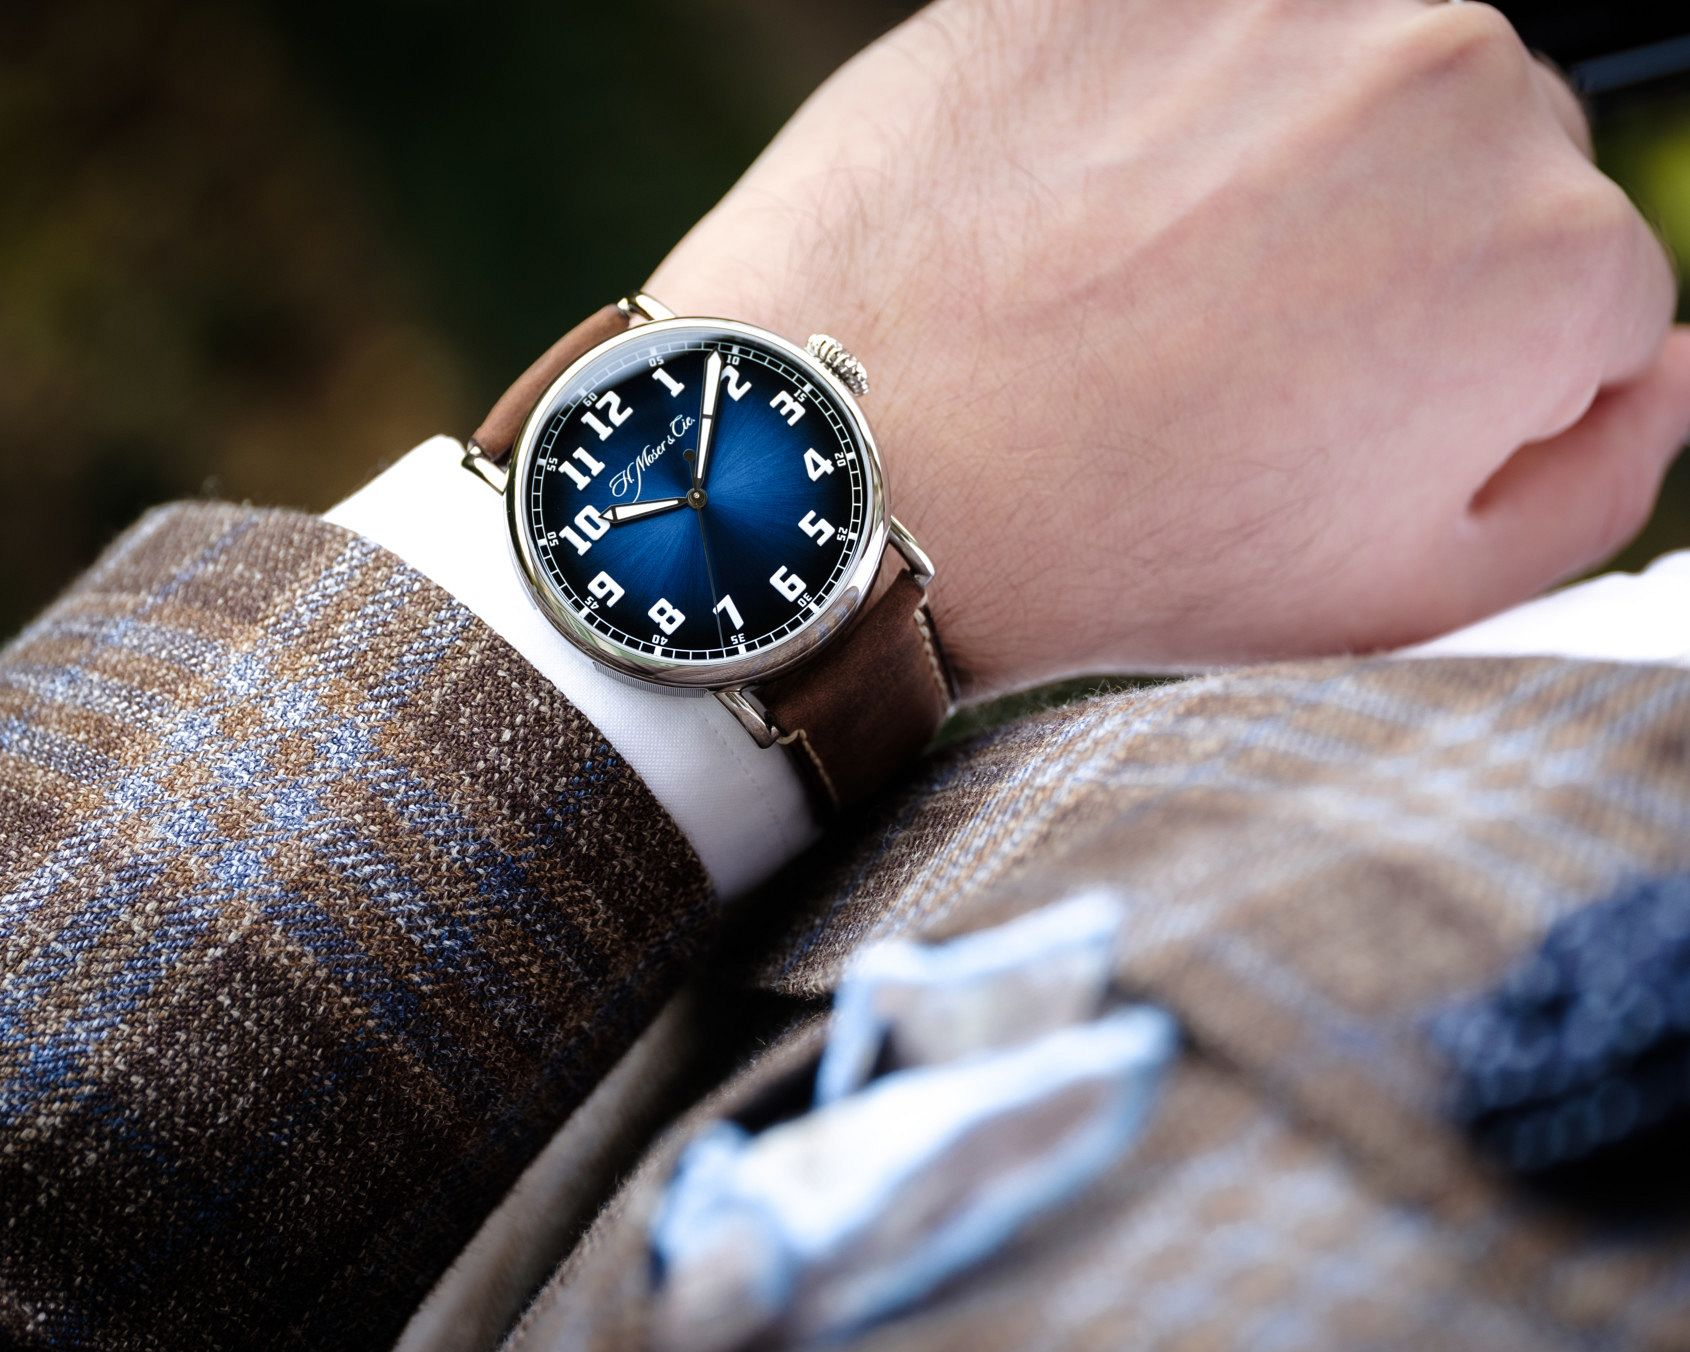 ANNOUNCING: You can now buy our favourite H. Moser & Cie models in the Time+Tide Shop